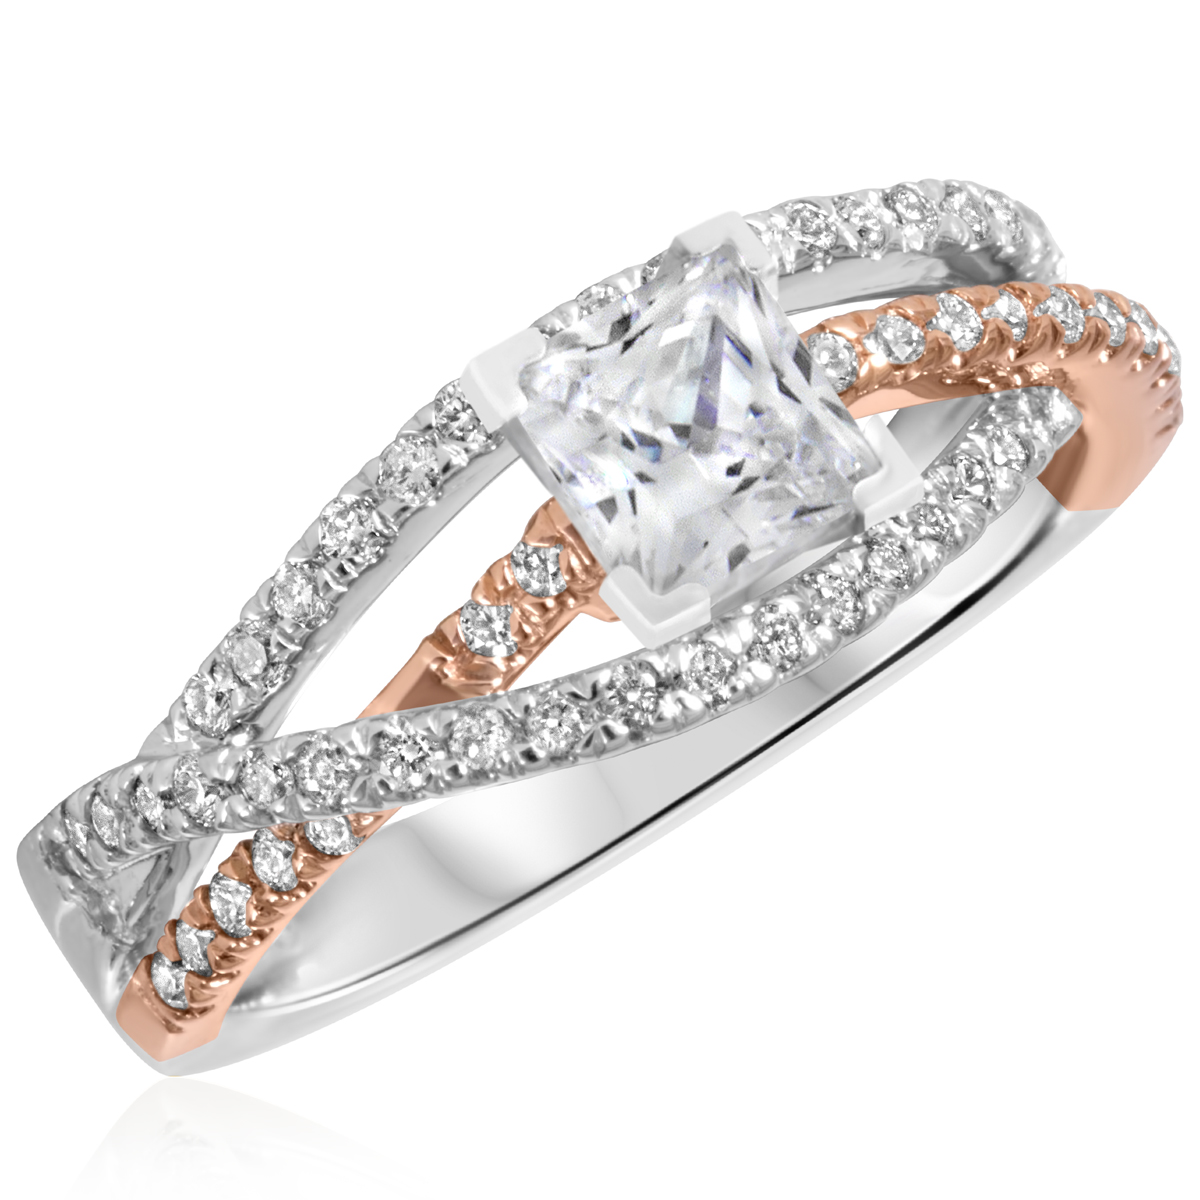 Diamond Wedding Rings On Sale Thanksgiving Ringoff Sale Matching Trio Sets Bridal